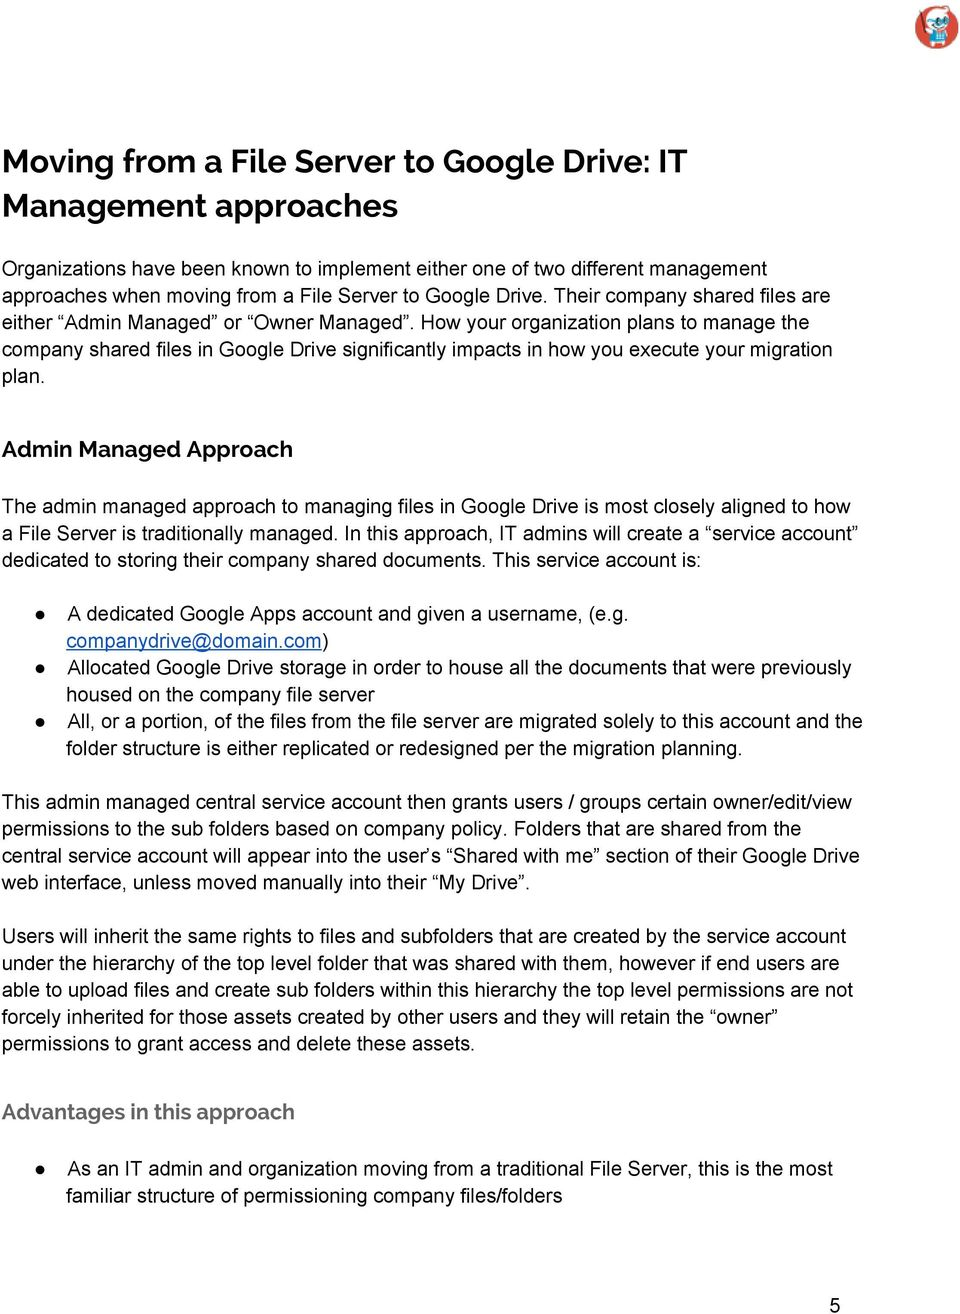 Comprehensive Guide to Moving a File Server to Google Drive